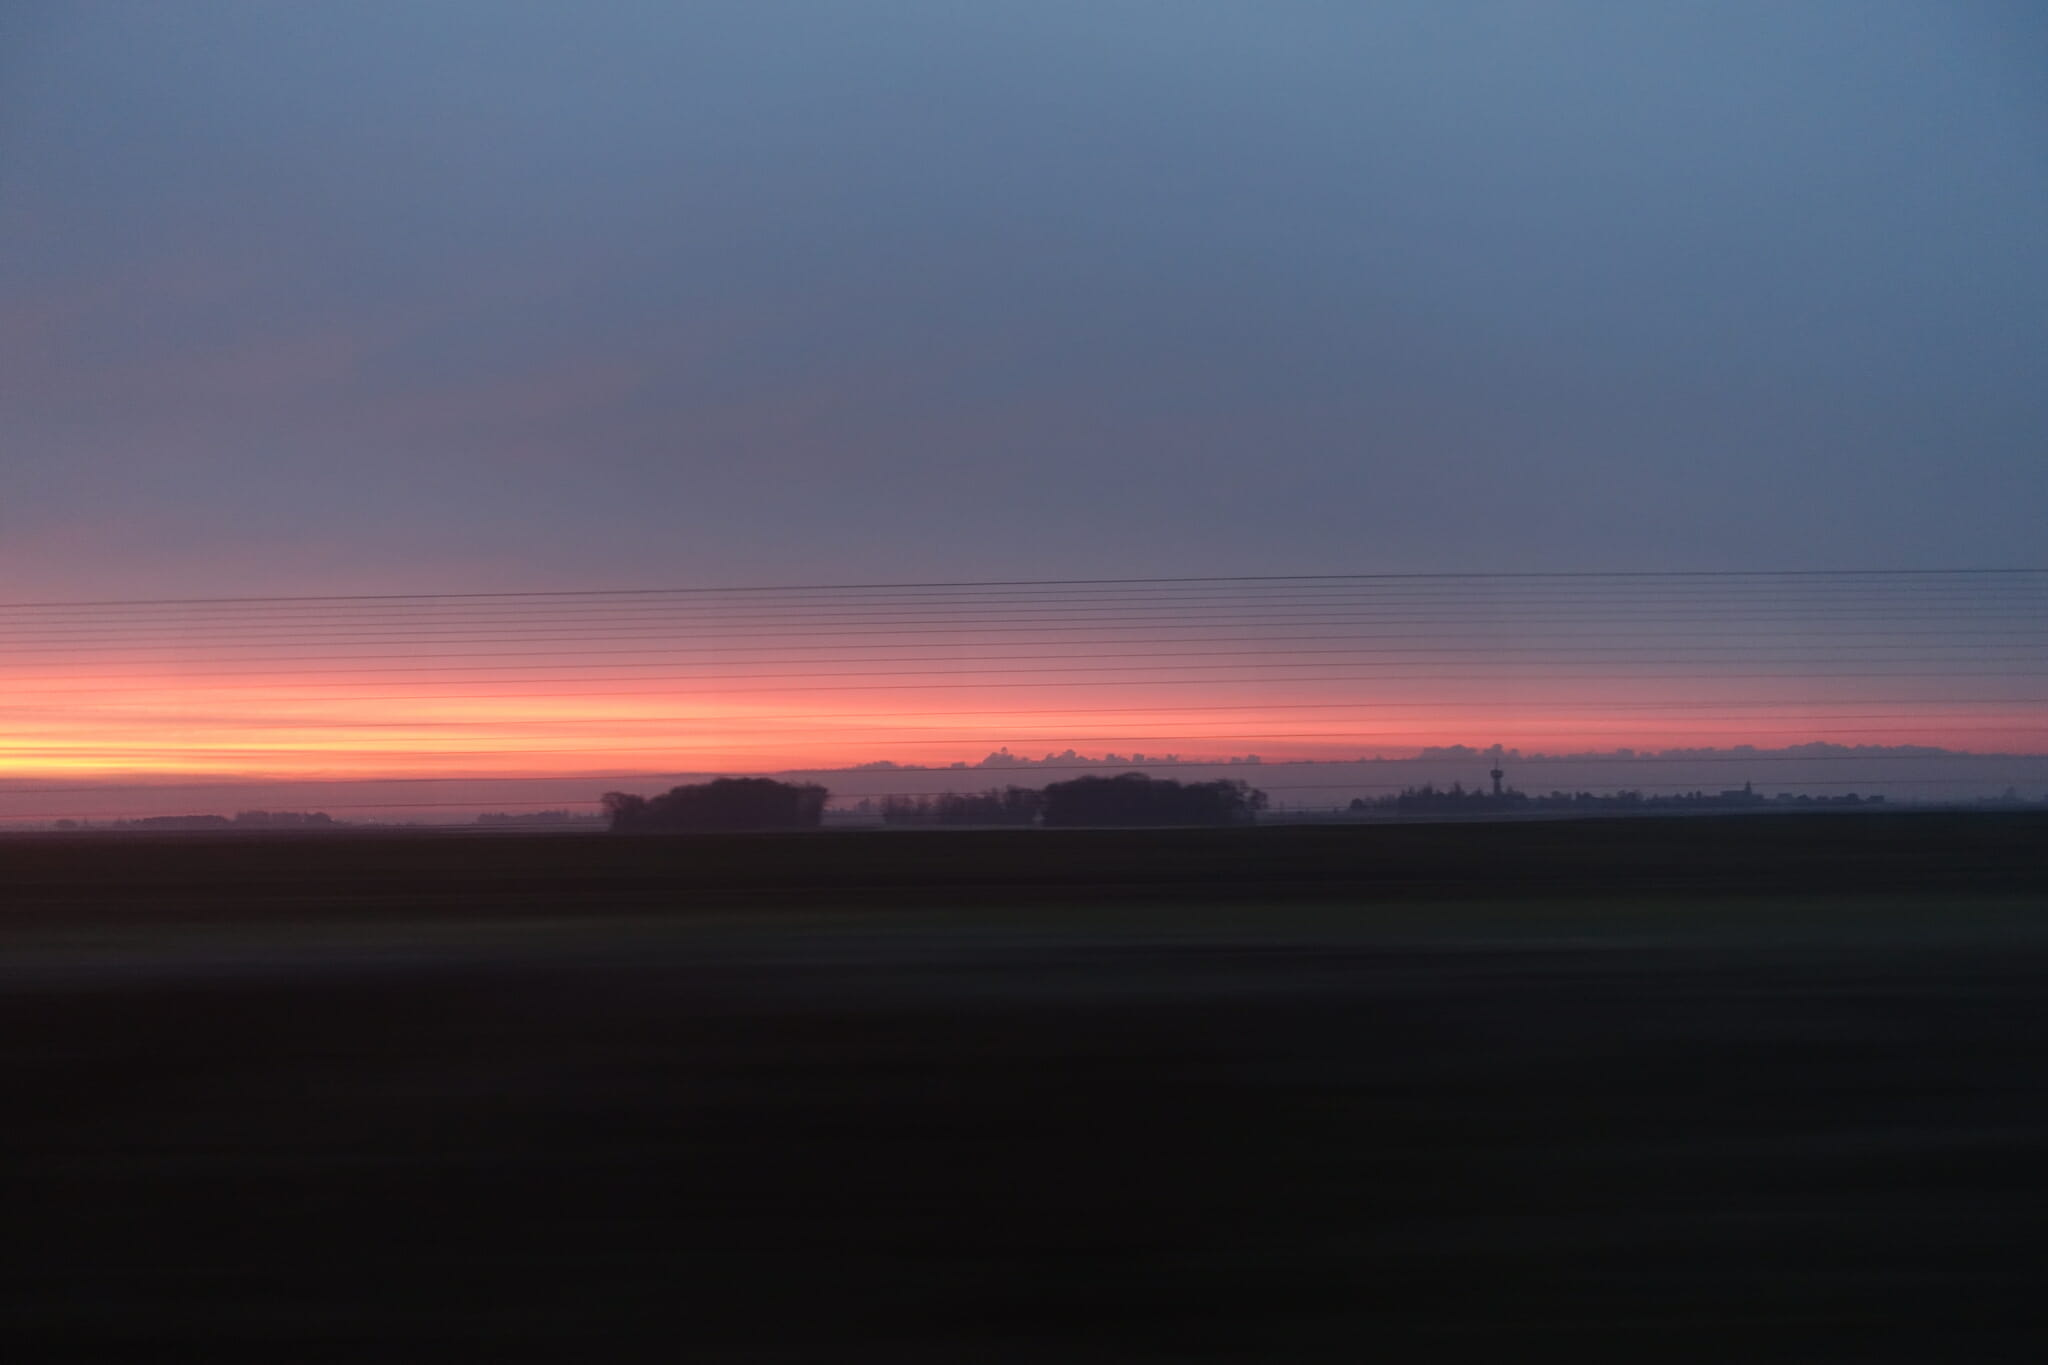 sunrise from the TGV to Rennes